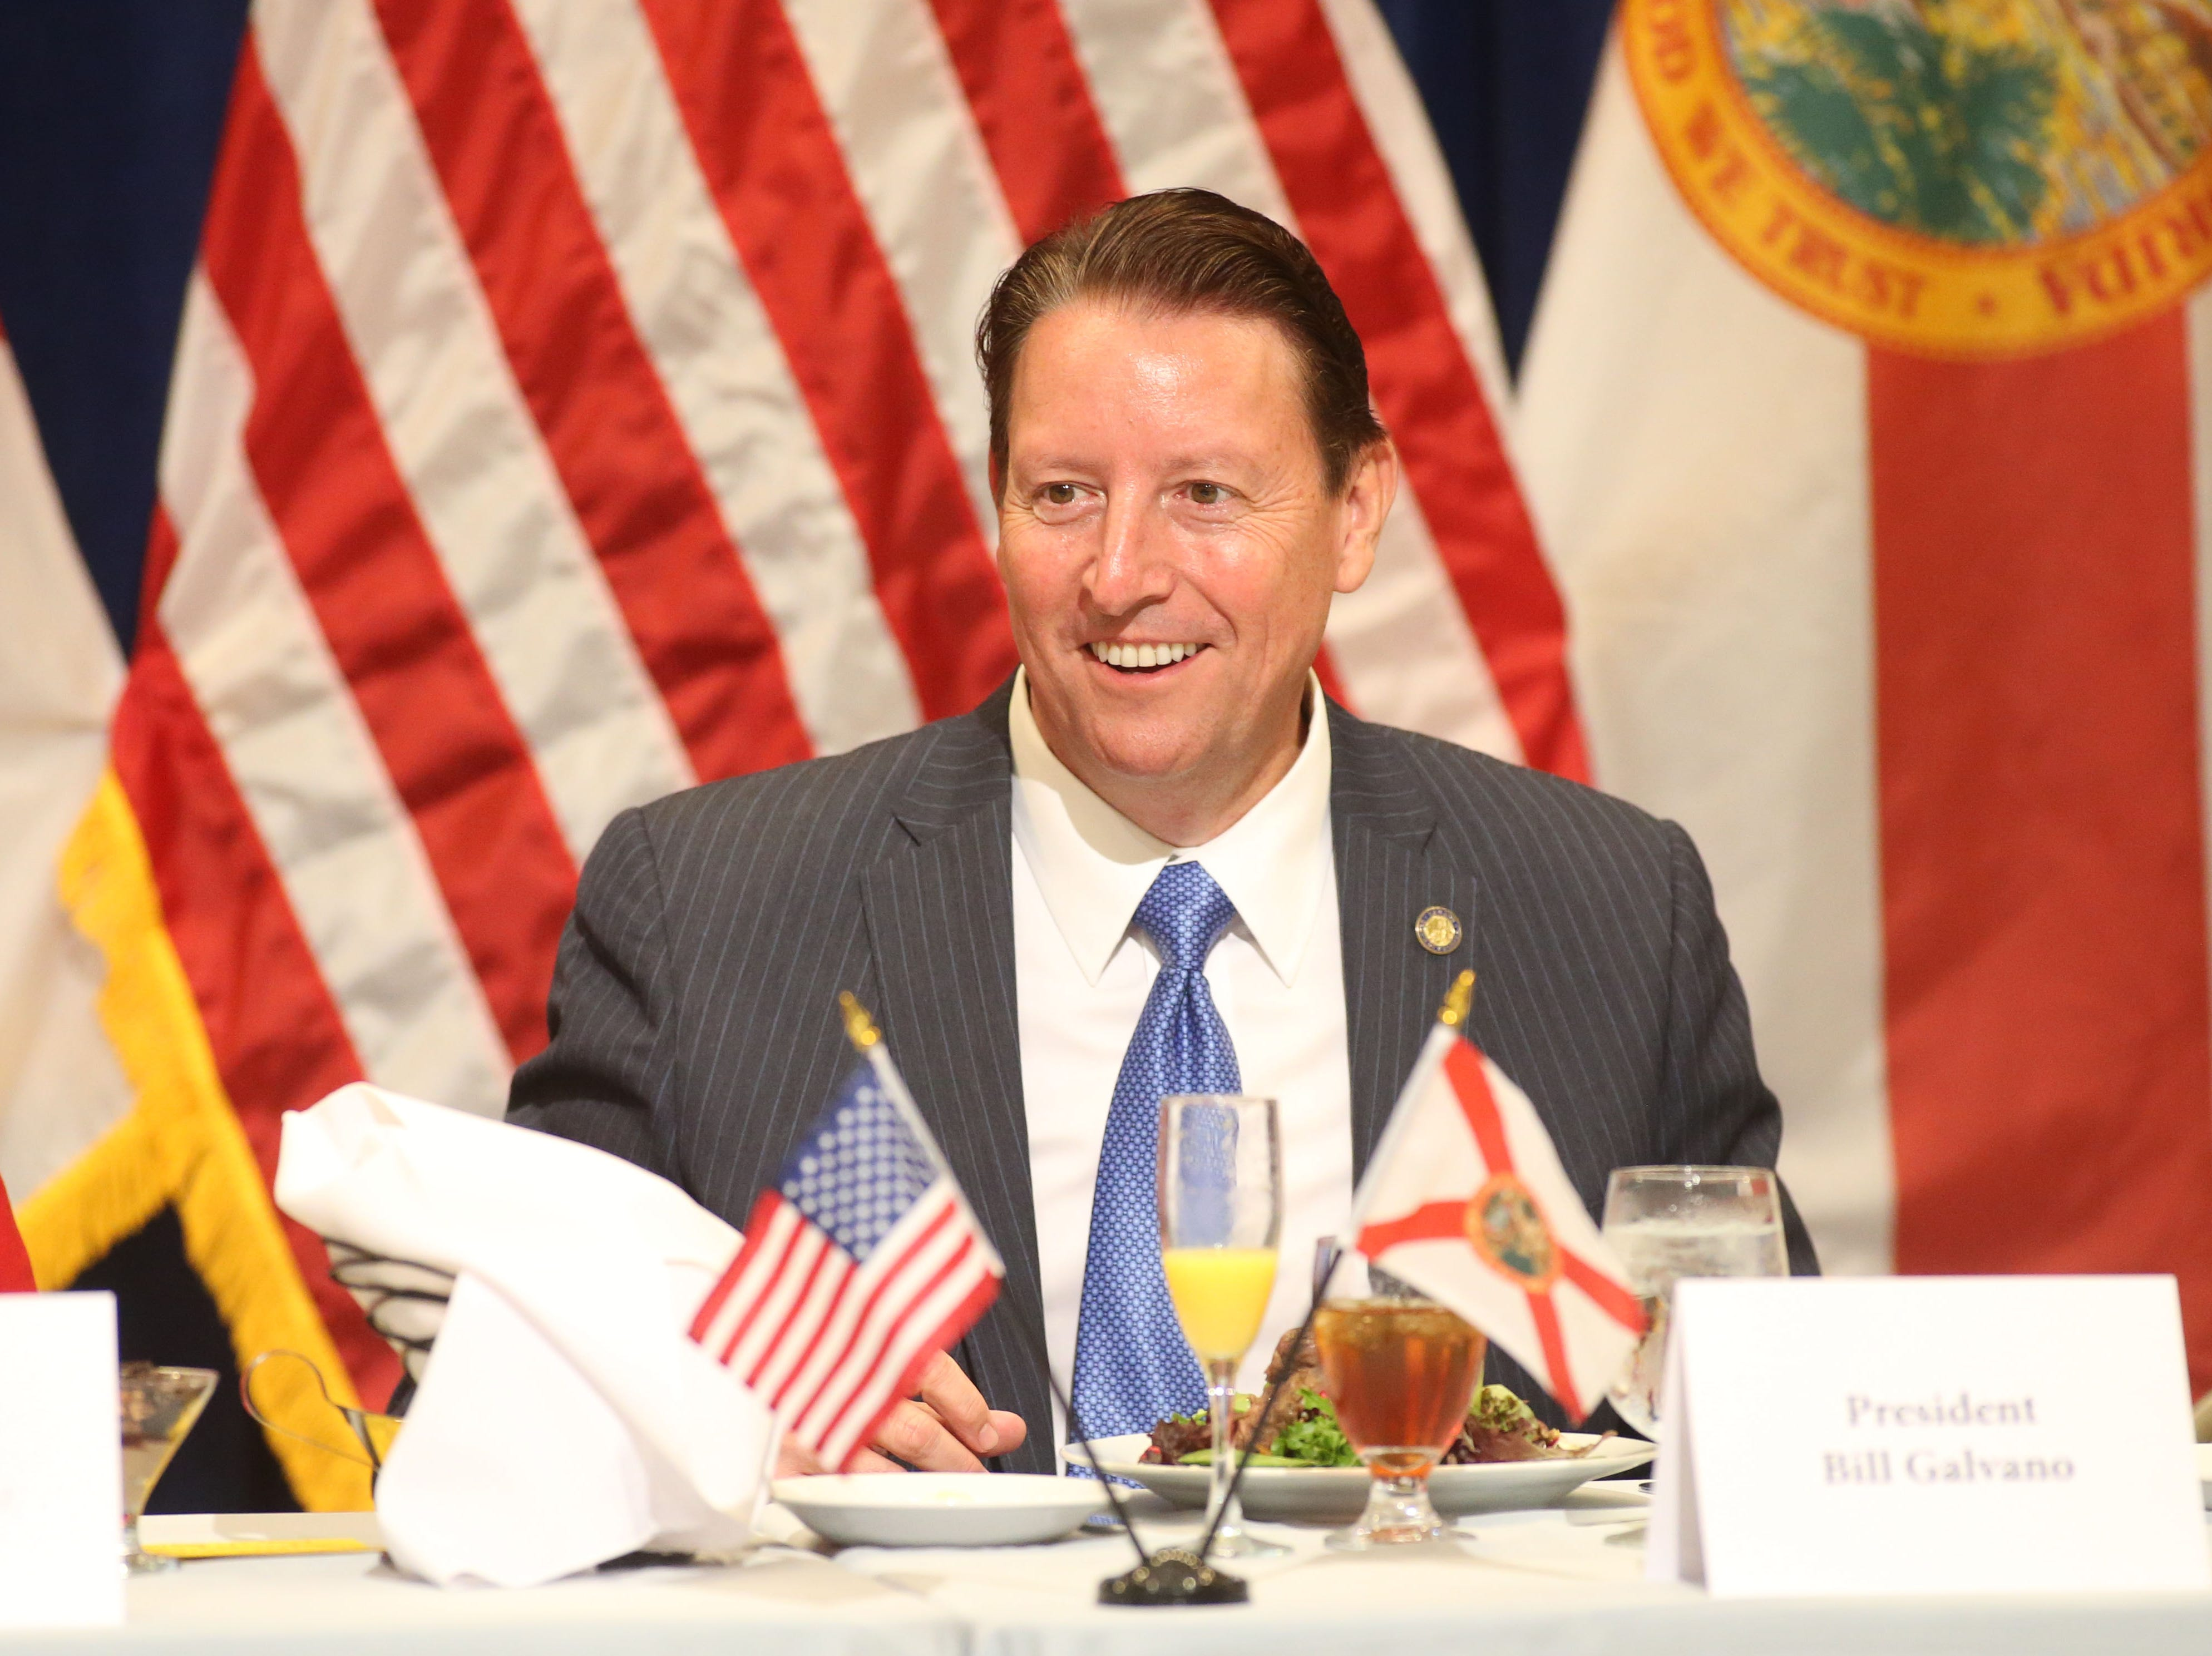 For the first time in Inaugural history, Gov. Ron DeSantis addresses FloridaÕs Legislative leaders and Cabinet officials. DeSantis discusses his plans to work with our stateÕs elected leaders to achieve a Bold Vision for a Brighter Future, Tuesday, Jan. 8, 2019. Senate President Bill Galvano smiles as food is being served.